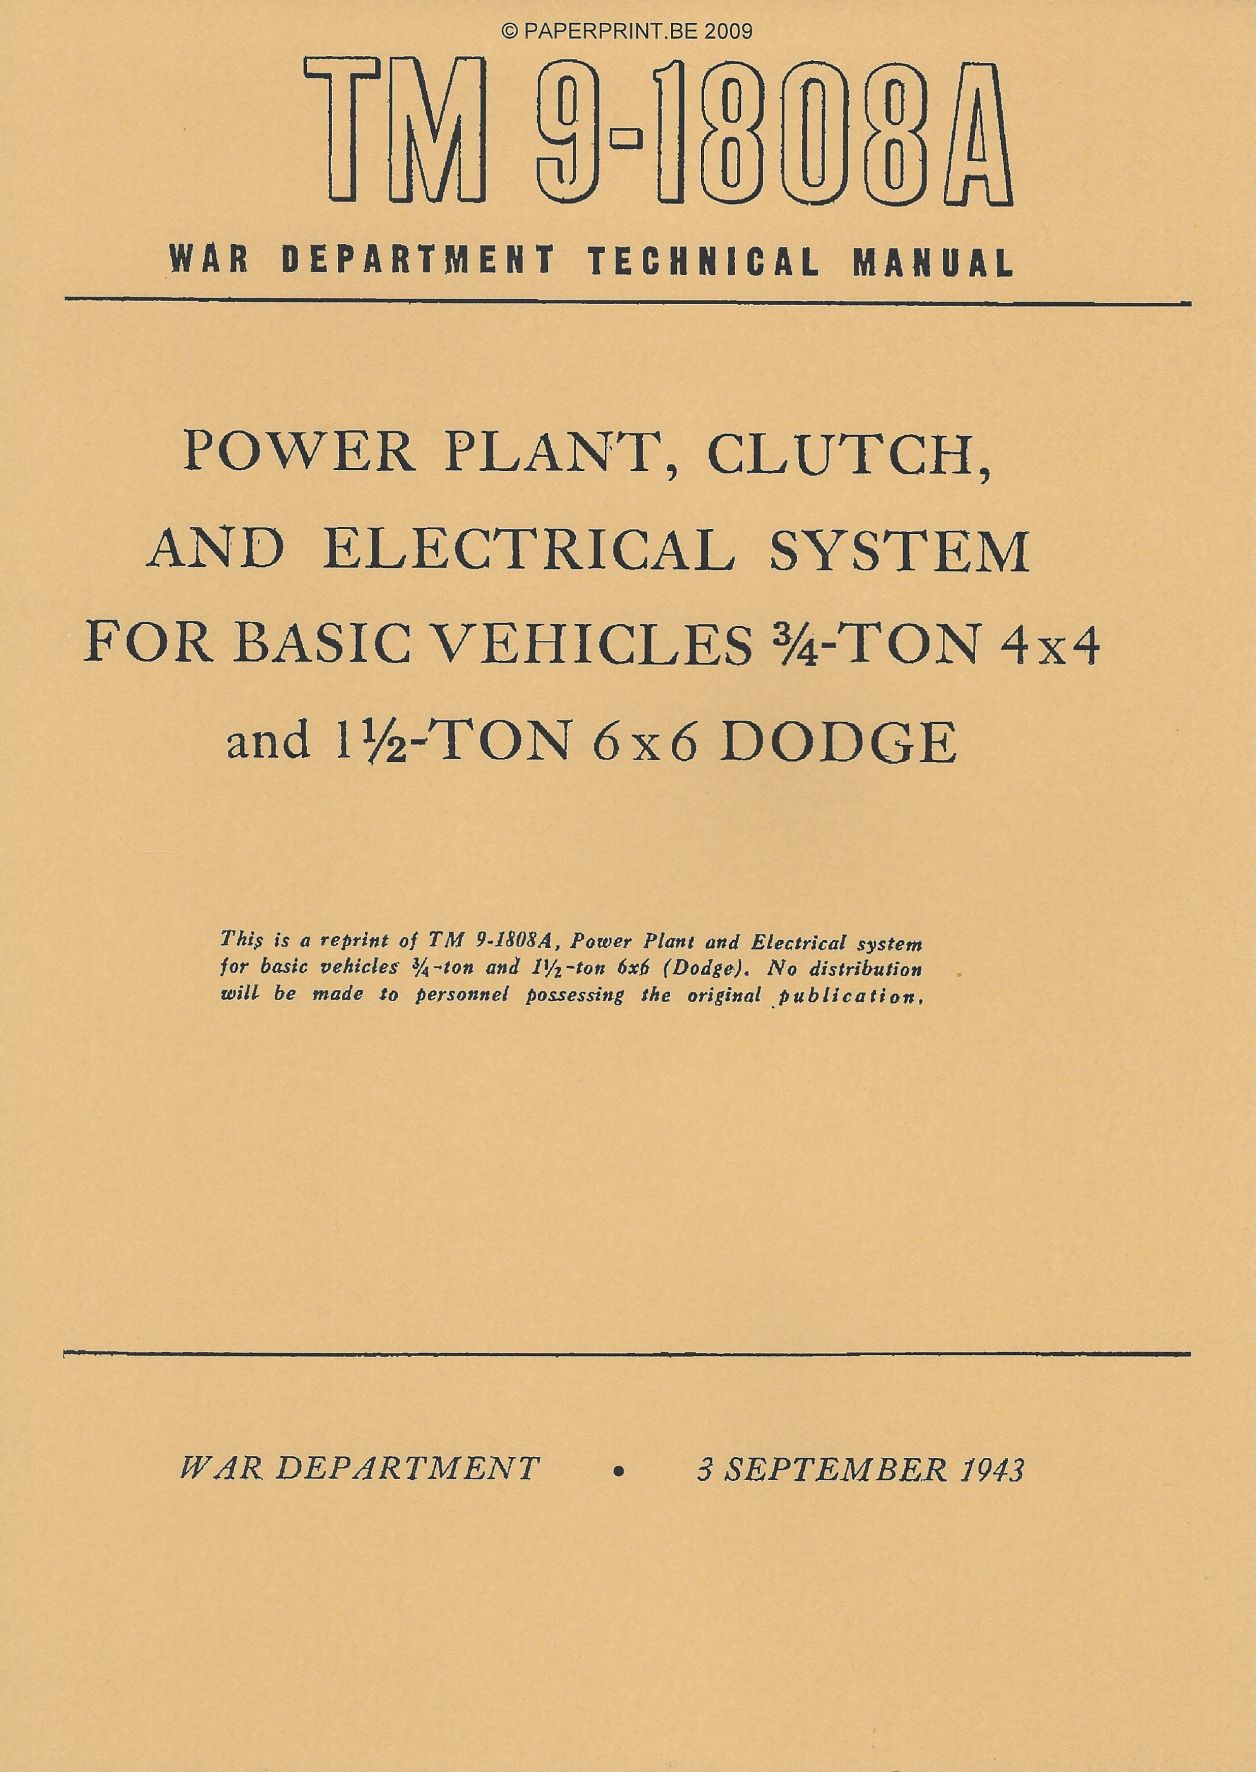 TM 9-1808A US POWER PLANT, CLUTCH AND ELECTRICAL SYSTEM FOR BASIC VEHICLES ¾ - TON 4x4 AND 1 ½ - TON 6x6 DODGE